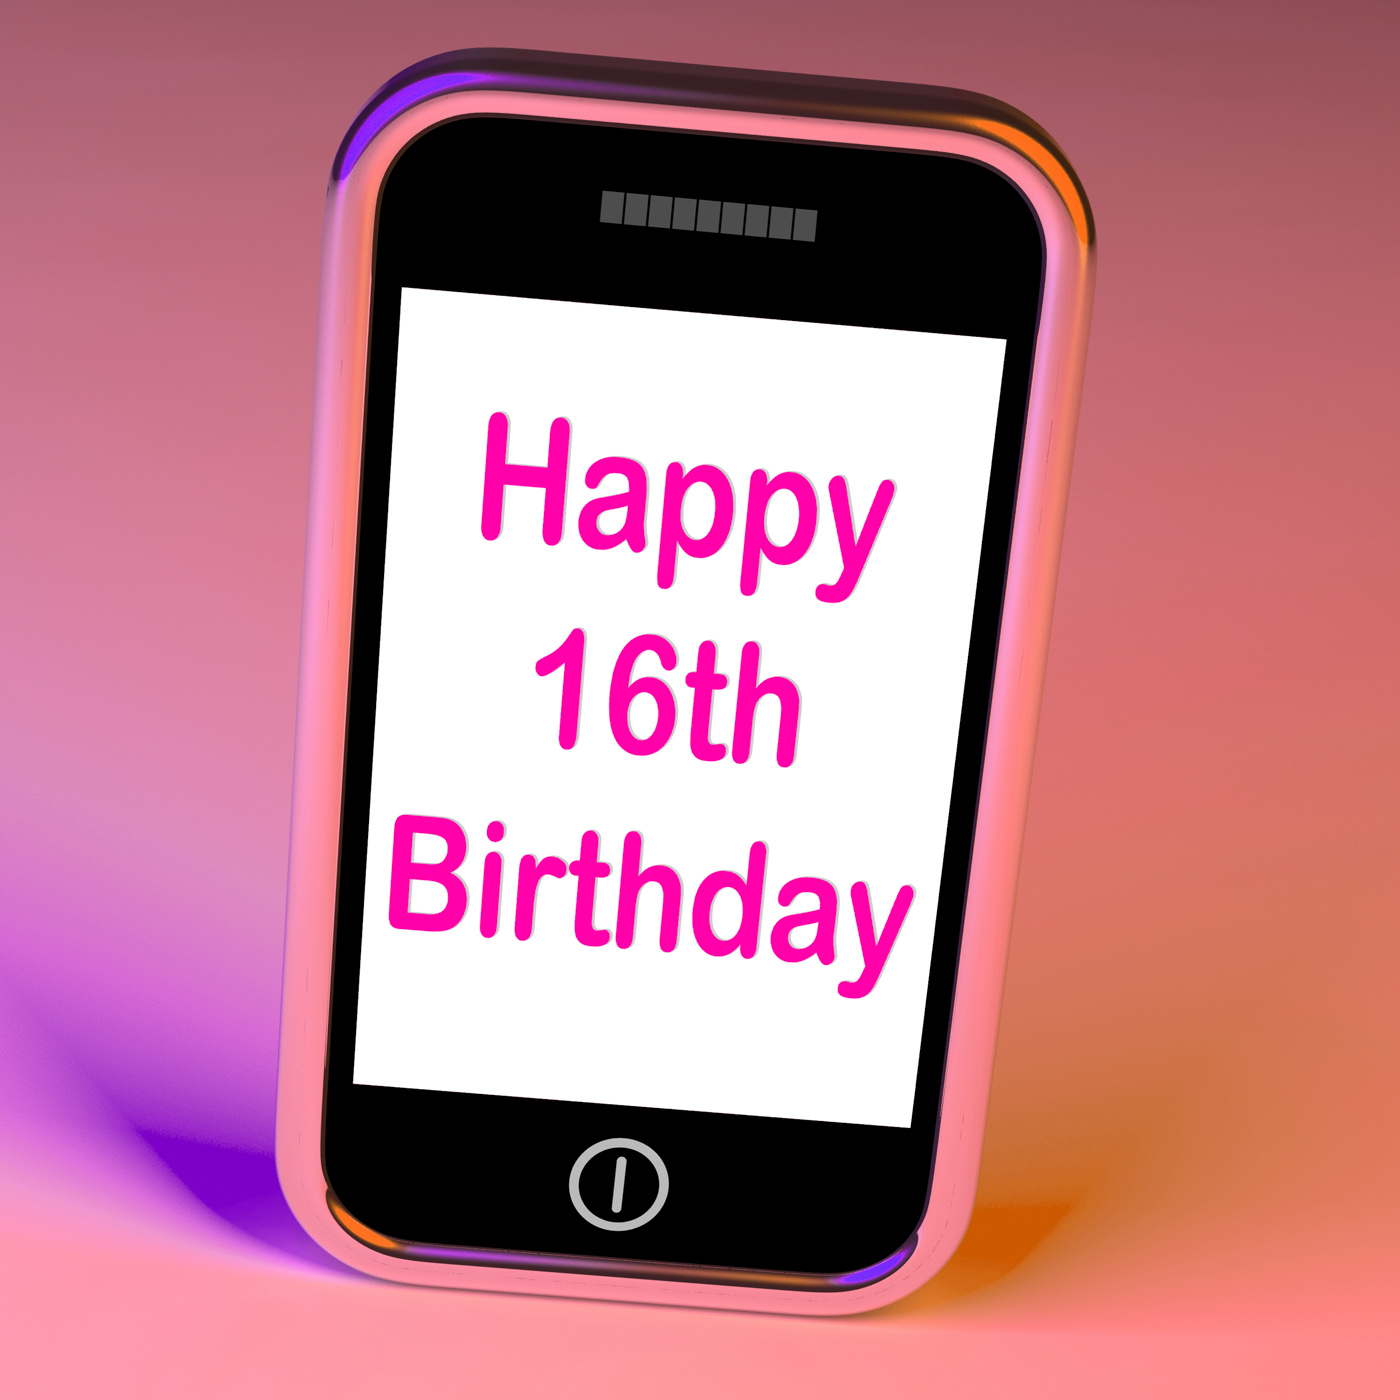 Free Photo Happy 16th Birthday On Phone Means Sixteenth Phone